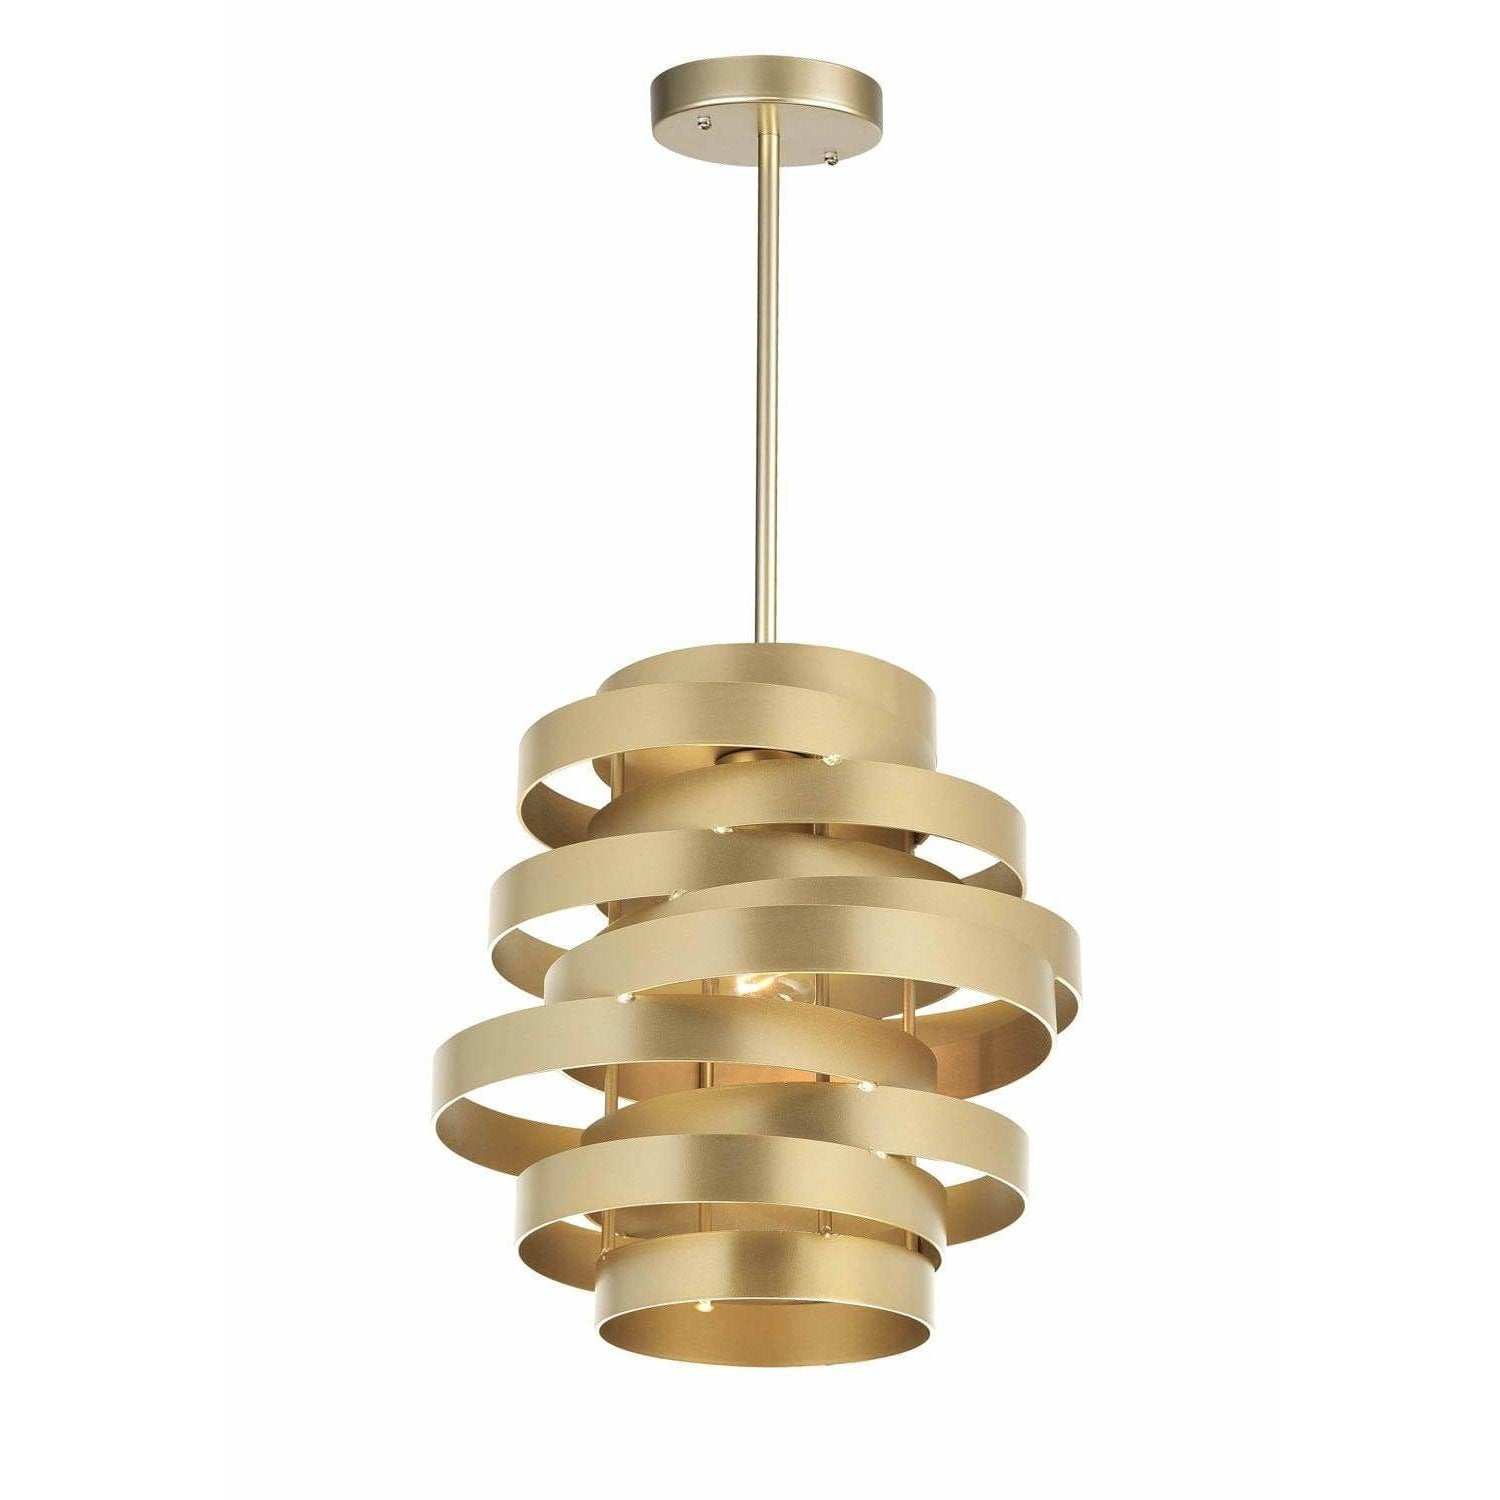 CWI Lighting Pendants Gold Leaf Elizabetta 1 Light Pendant with Gold Leaf Finish by CWI Lighting 1068P10-1-620